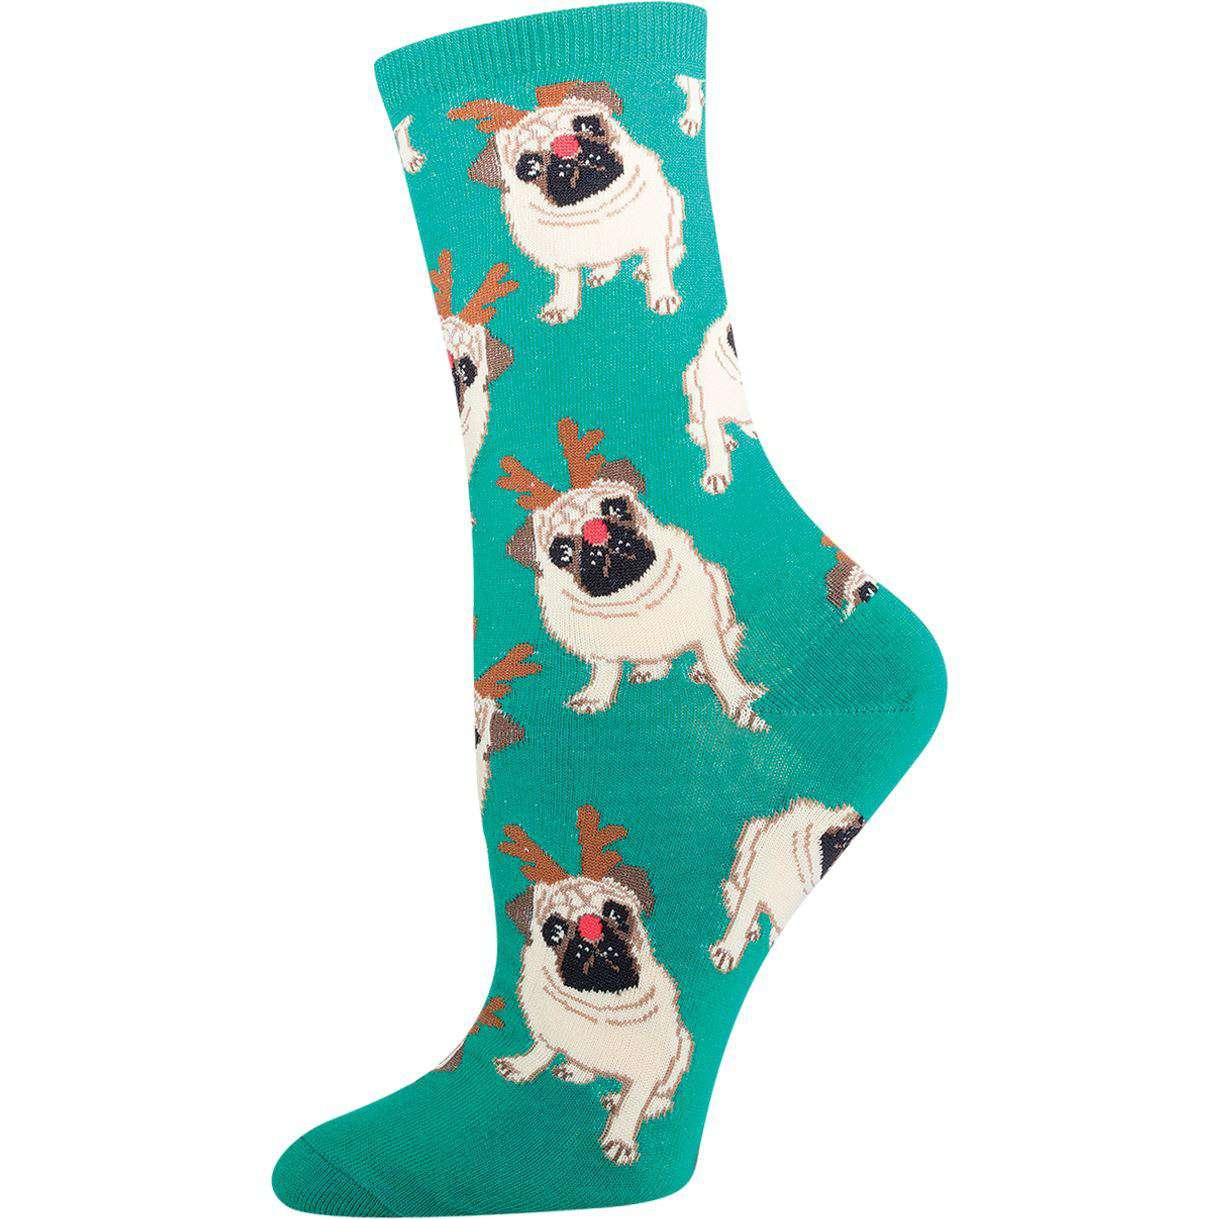 SockSmith Holiday Socks Antler Pug | Fun Crew Socks for Women